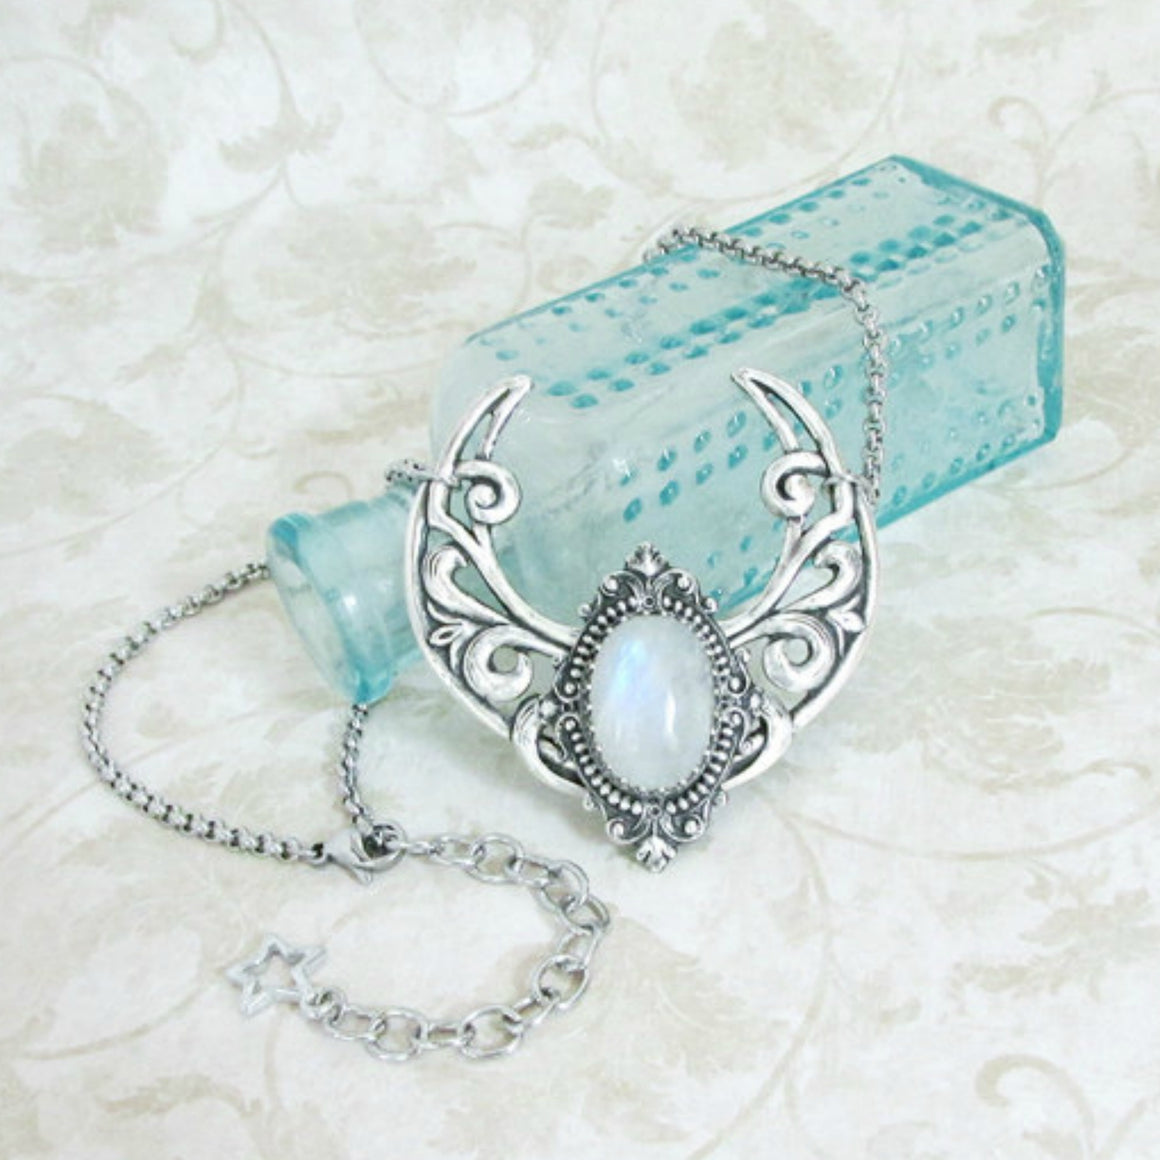 Enchantress Moonstone Necklace